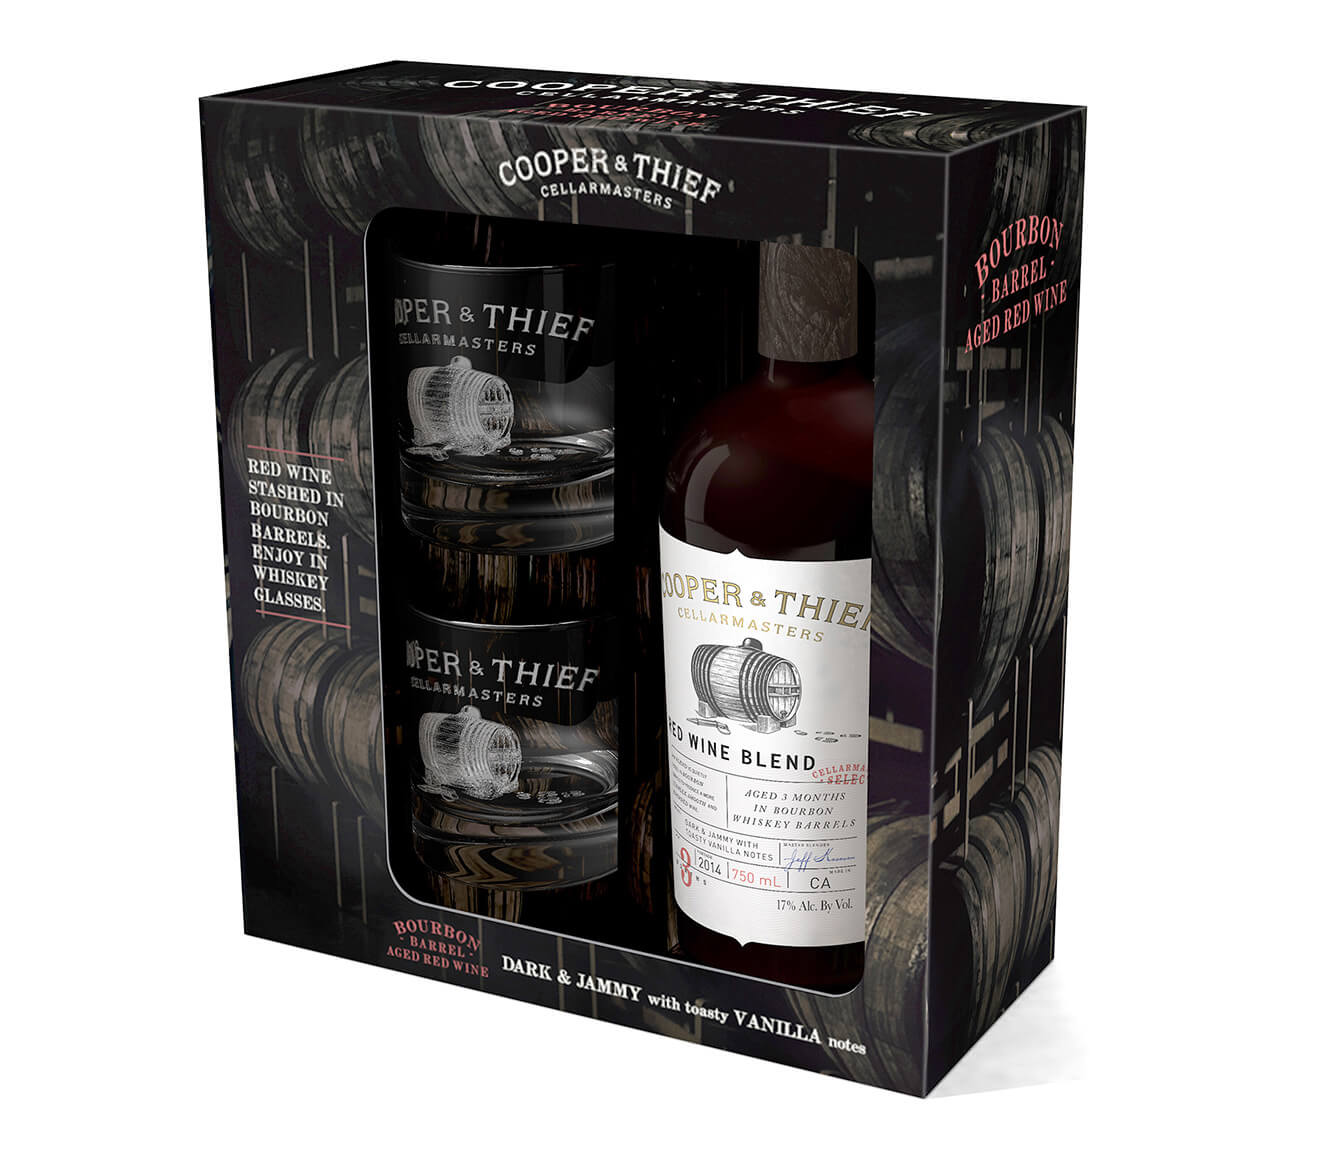 Cooper & Thief 2014 Red Blend Holiday Gift Pack, on white